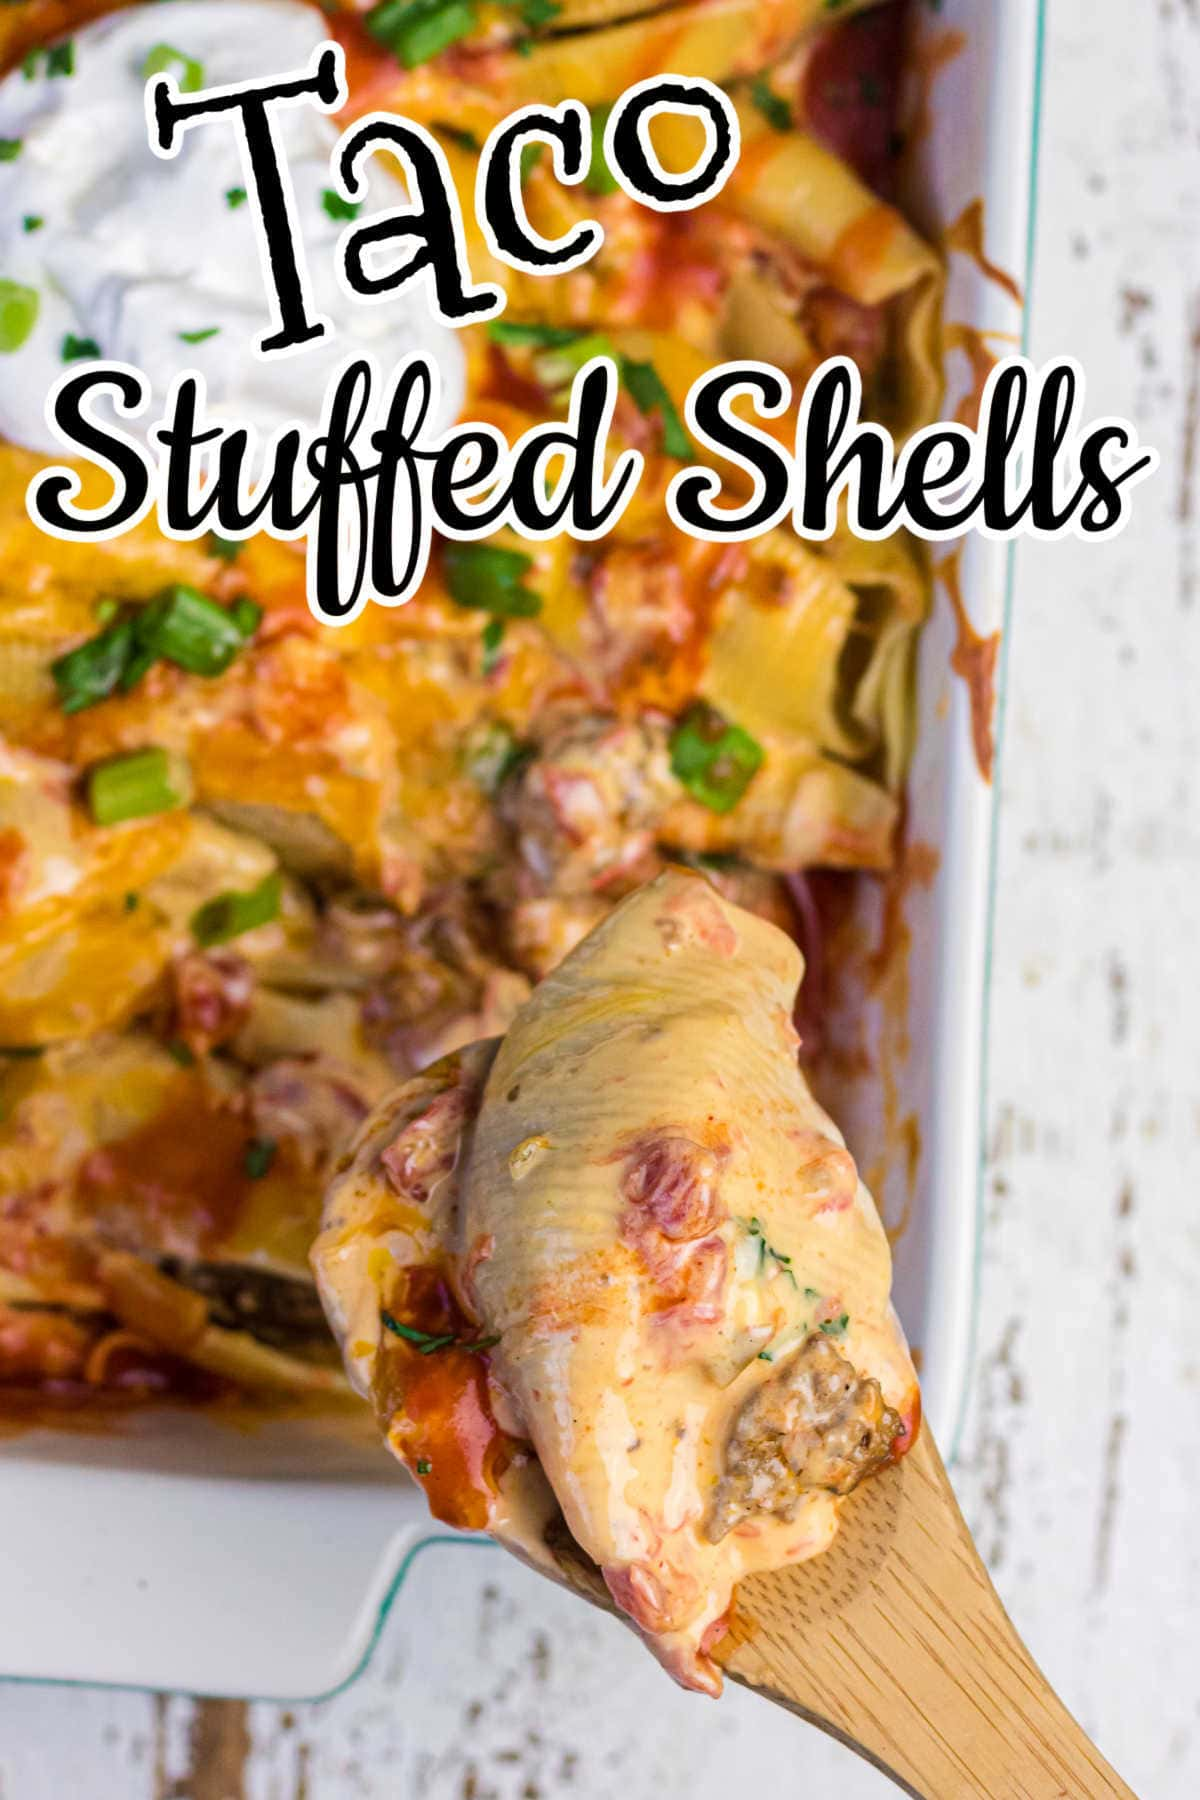 Title text overlay on an image of stuffed shells.